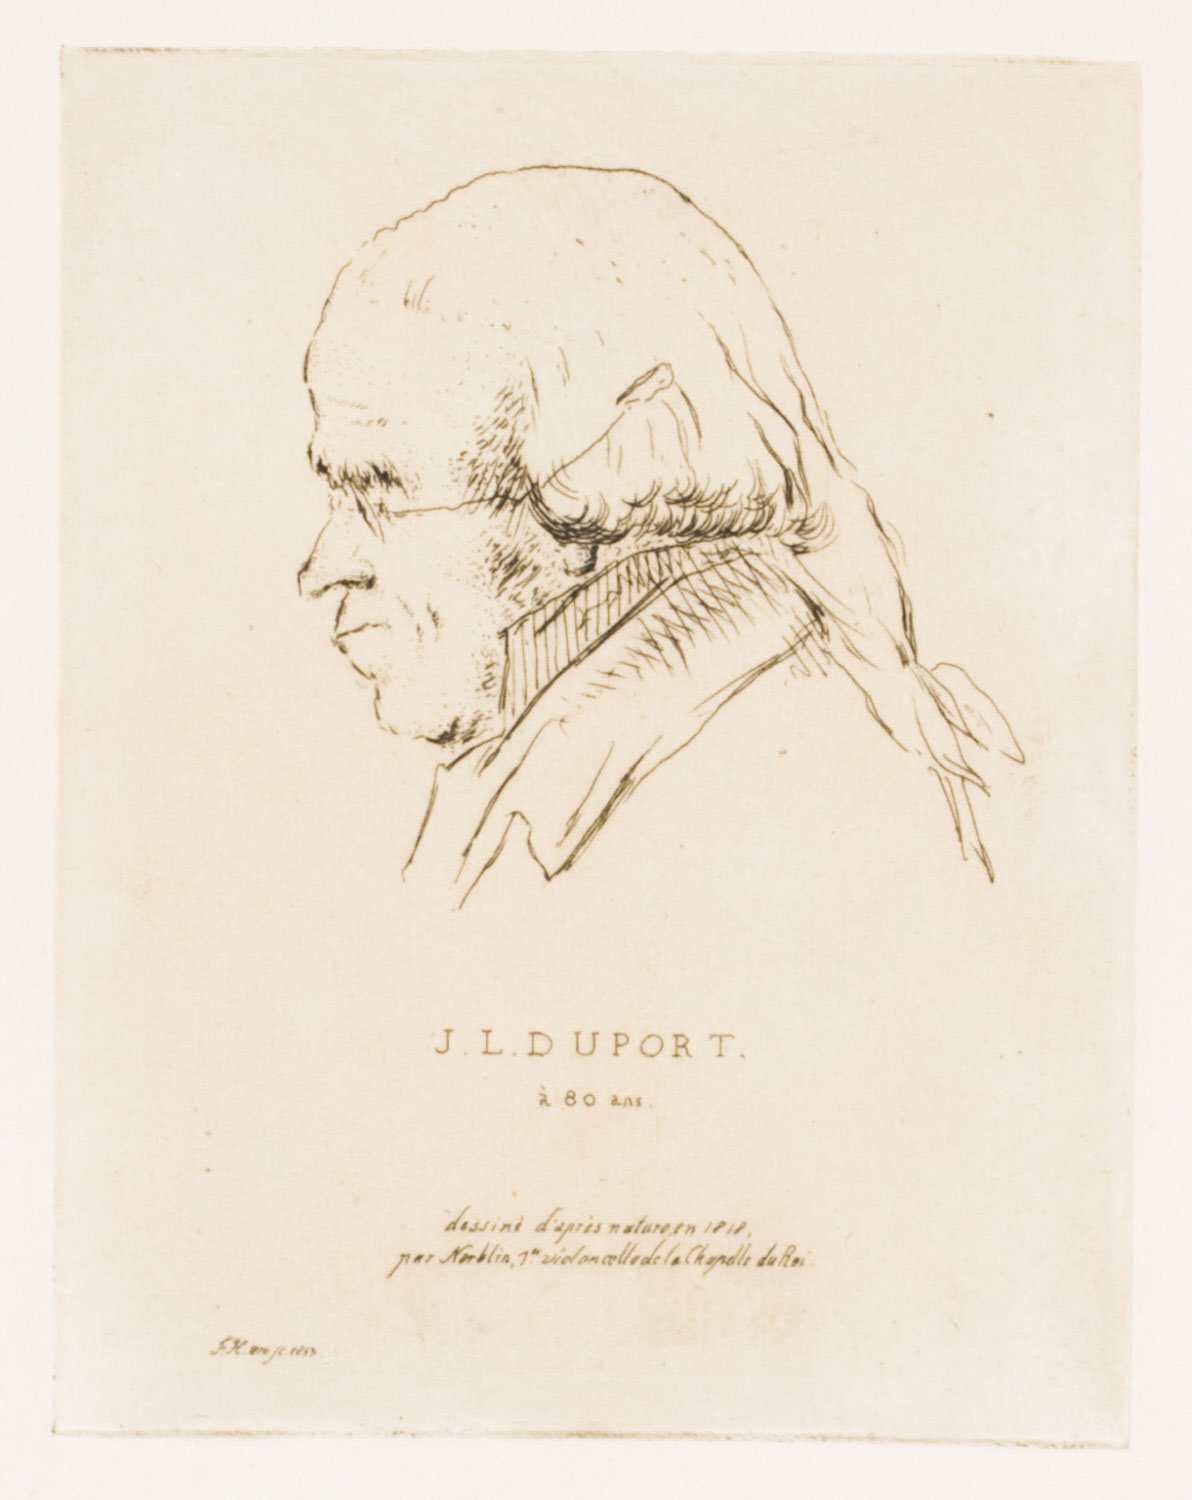 Portrait of the Cellist Jean-Louis Duport (1749 - 1819), at the Age of 80